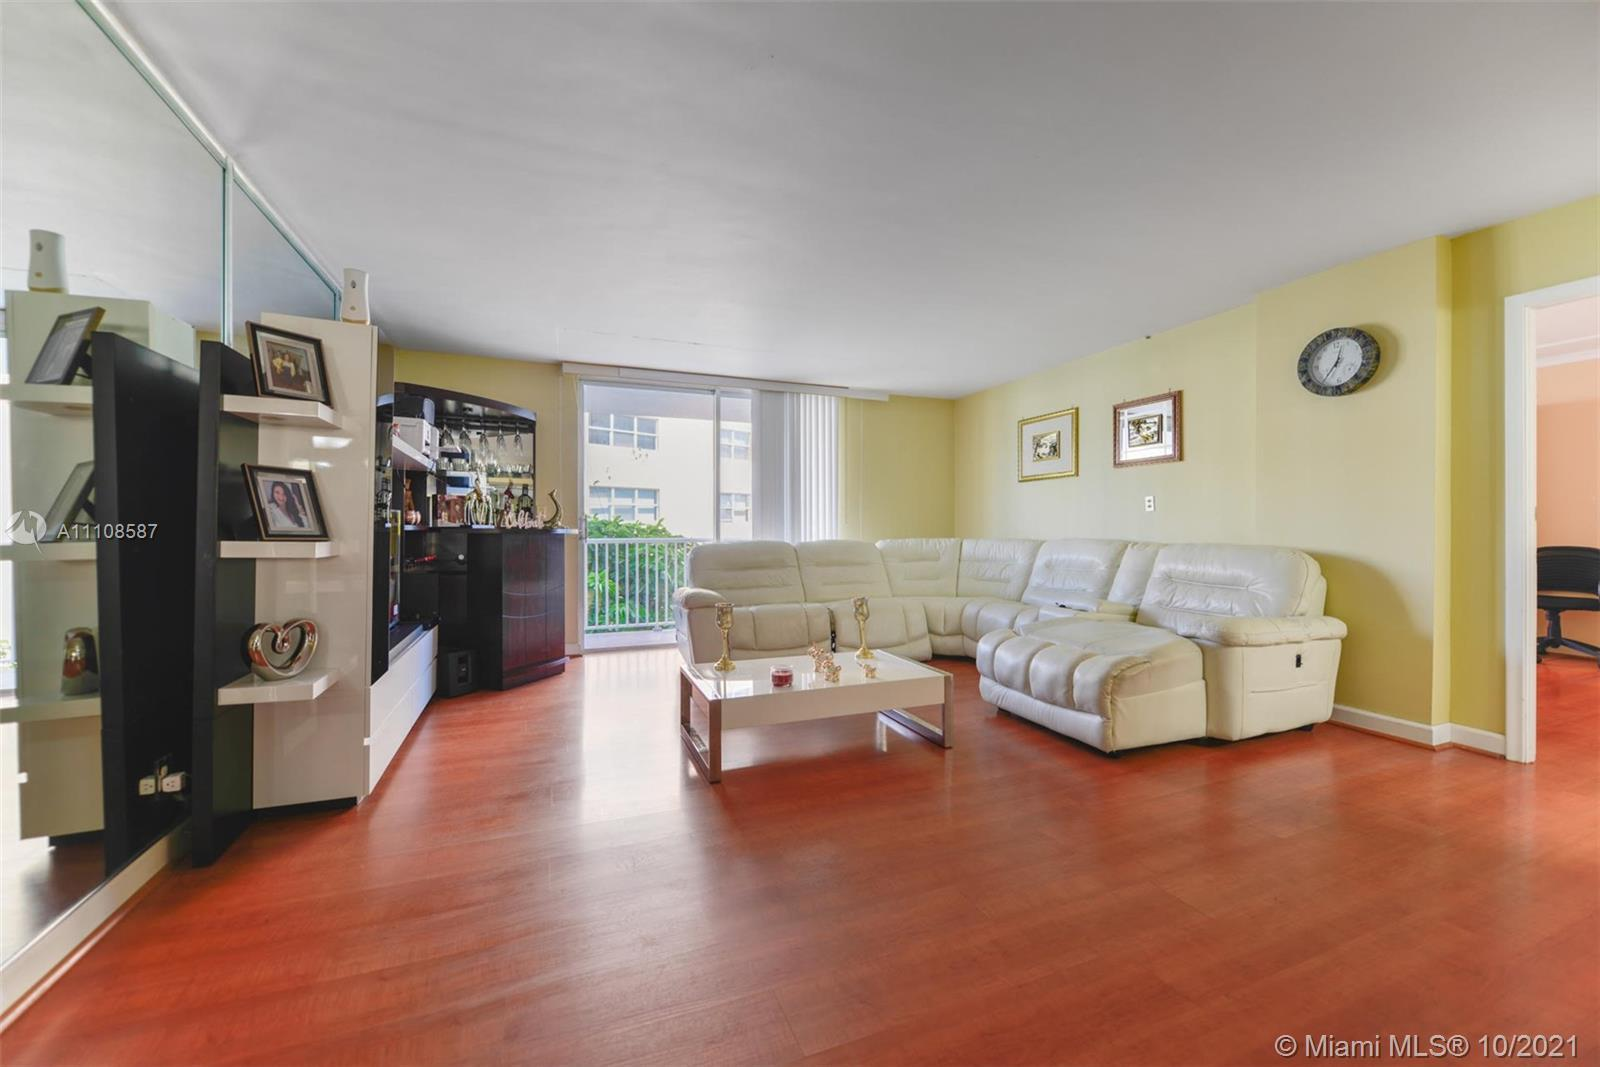 Gorgeous 2BD/2BA with enormous Balcony at the Golden Surf Towers Condominium. Beautiful intercoastal